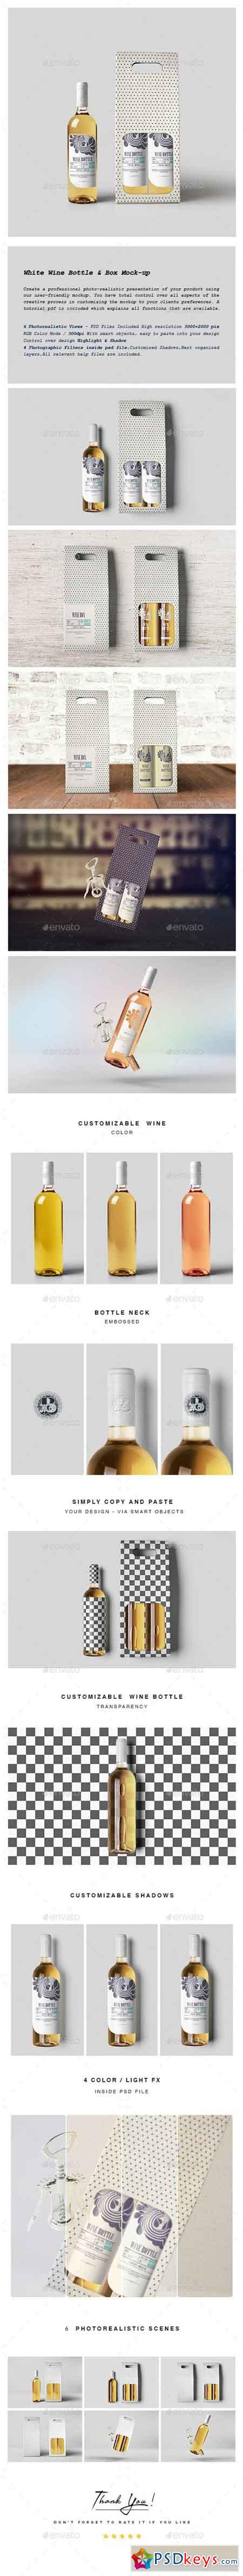 White Wine Bottle and Box Mock-up 20442890